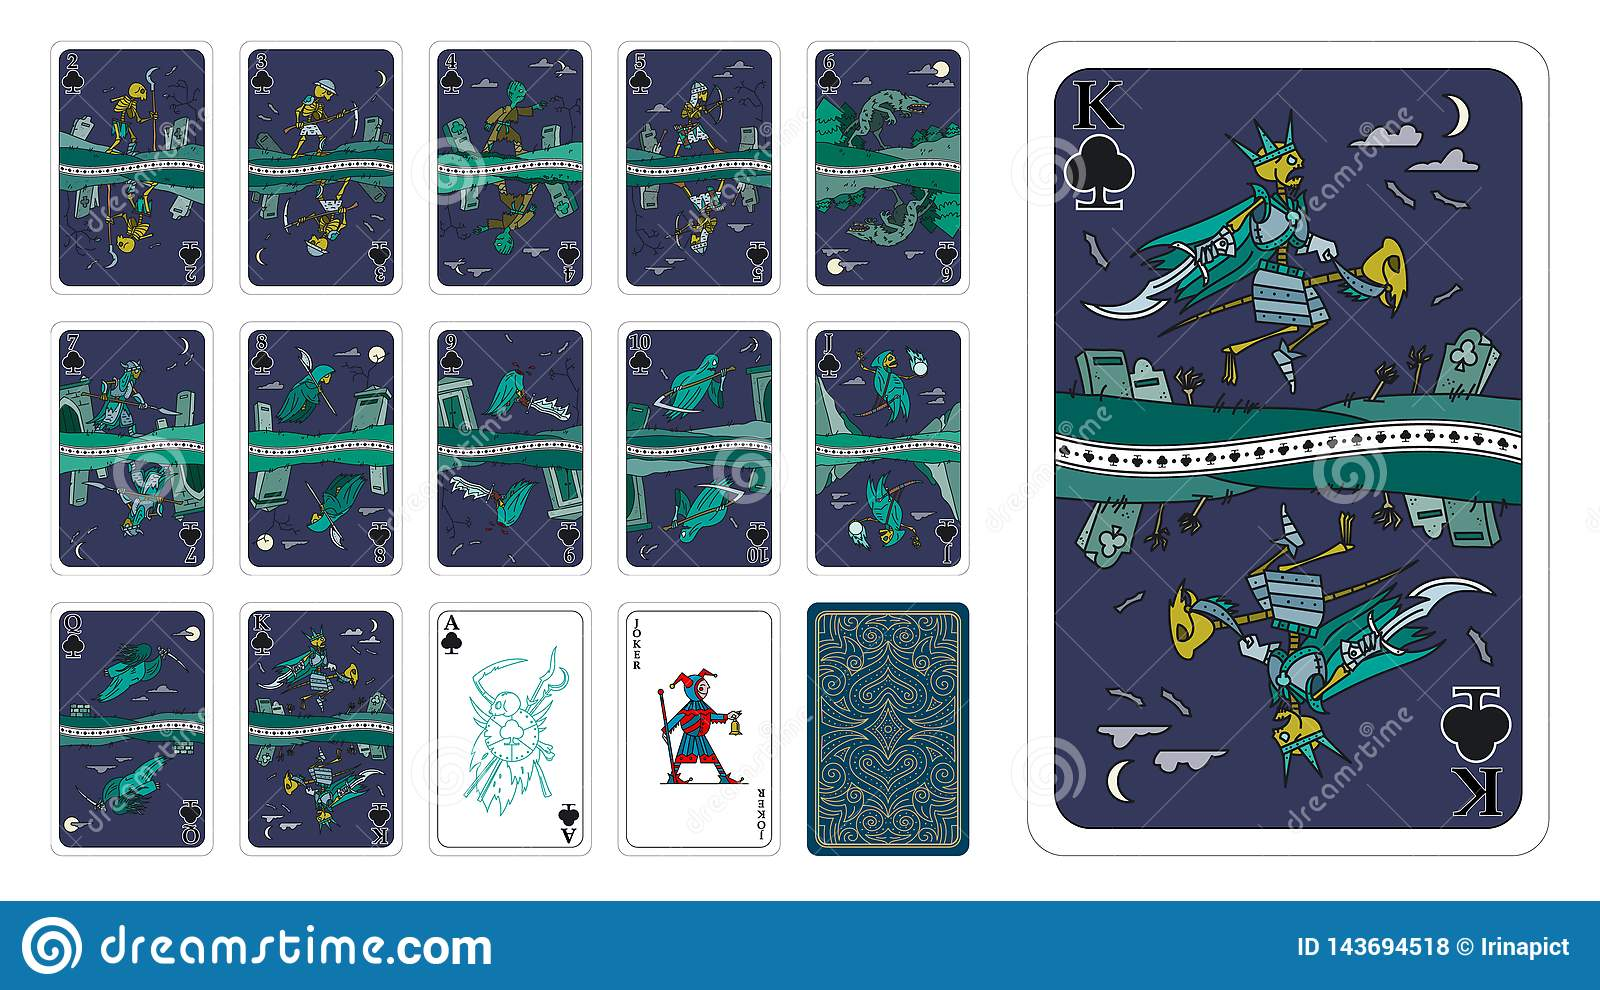 Playing cards in fantasy style Clubs as Undead cartoon